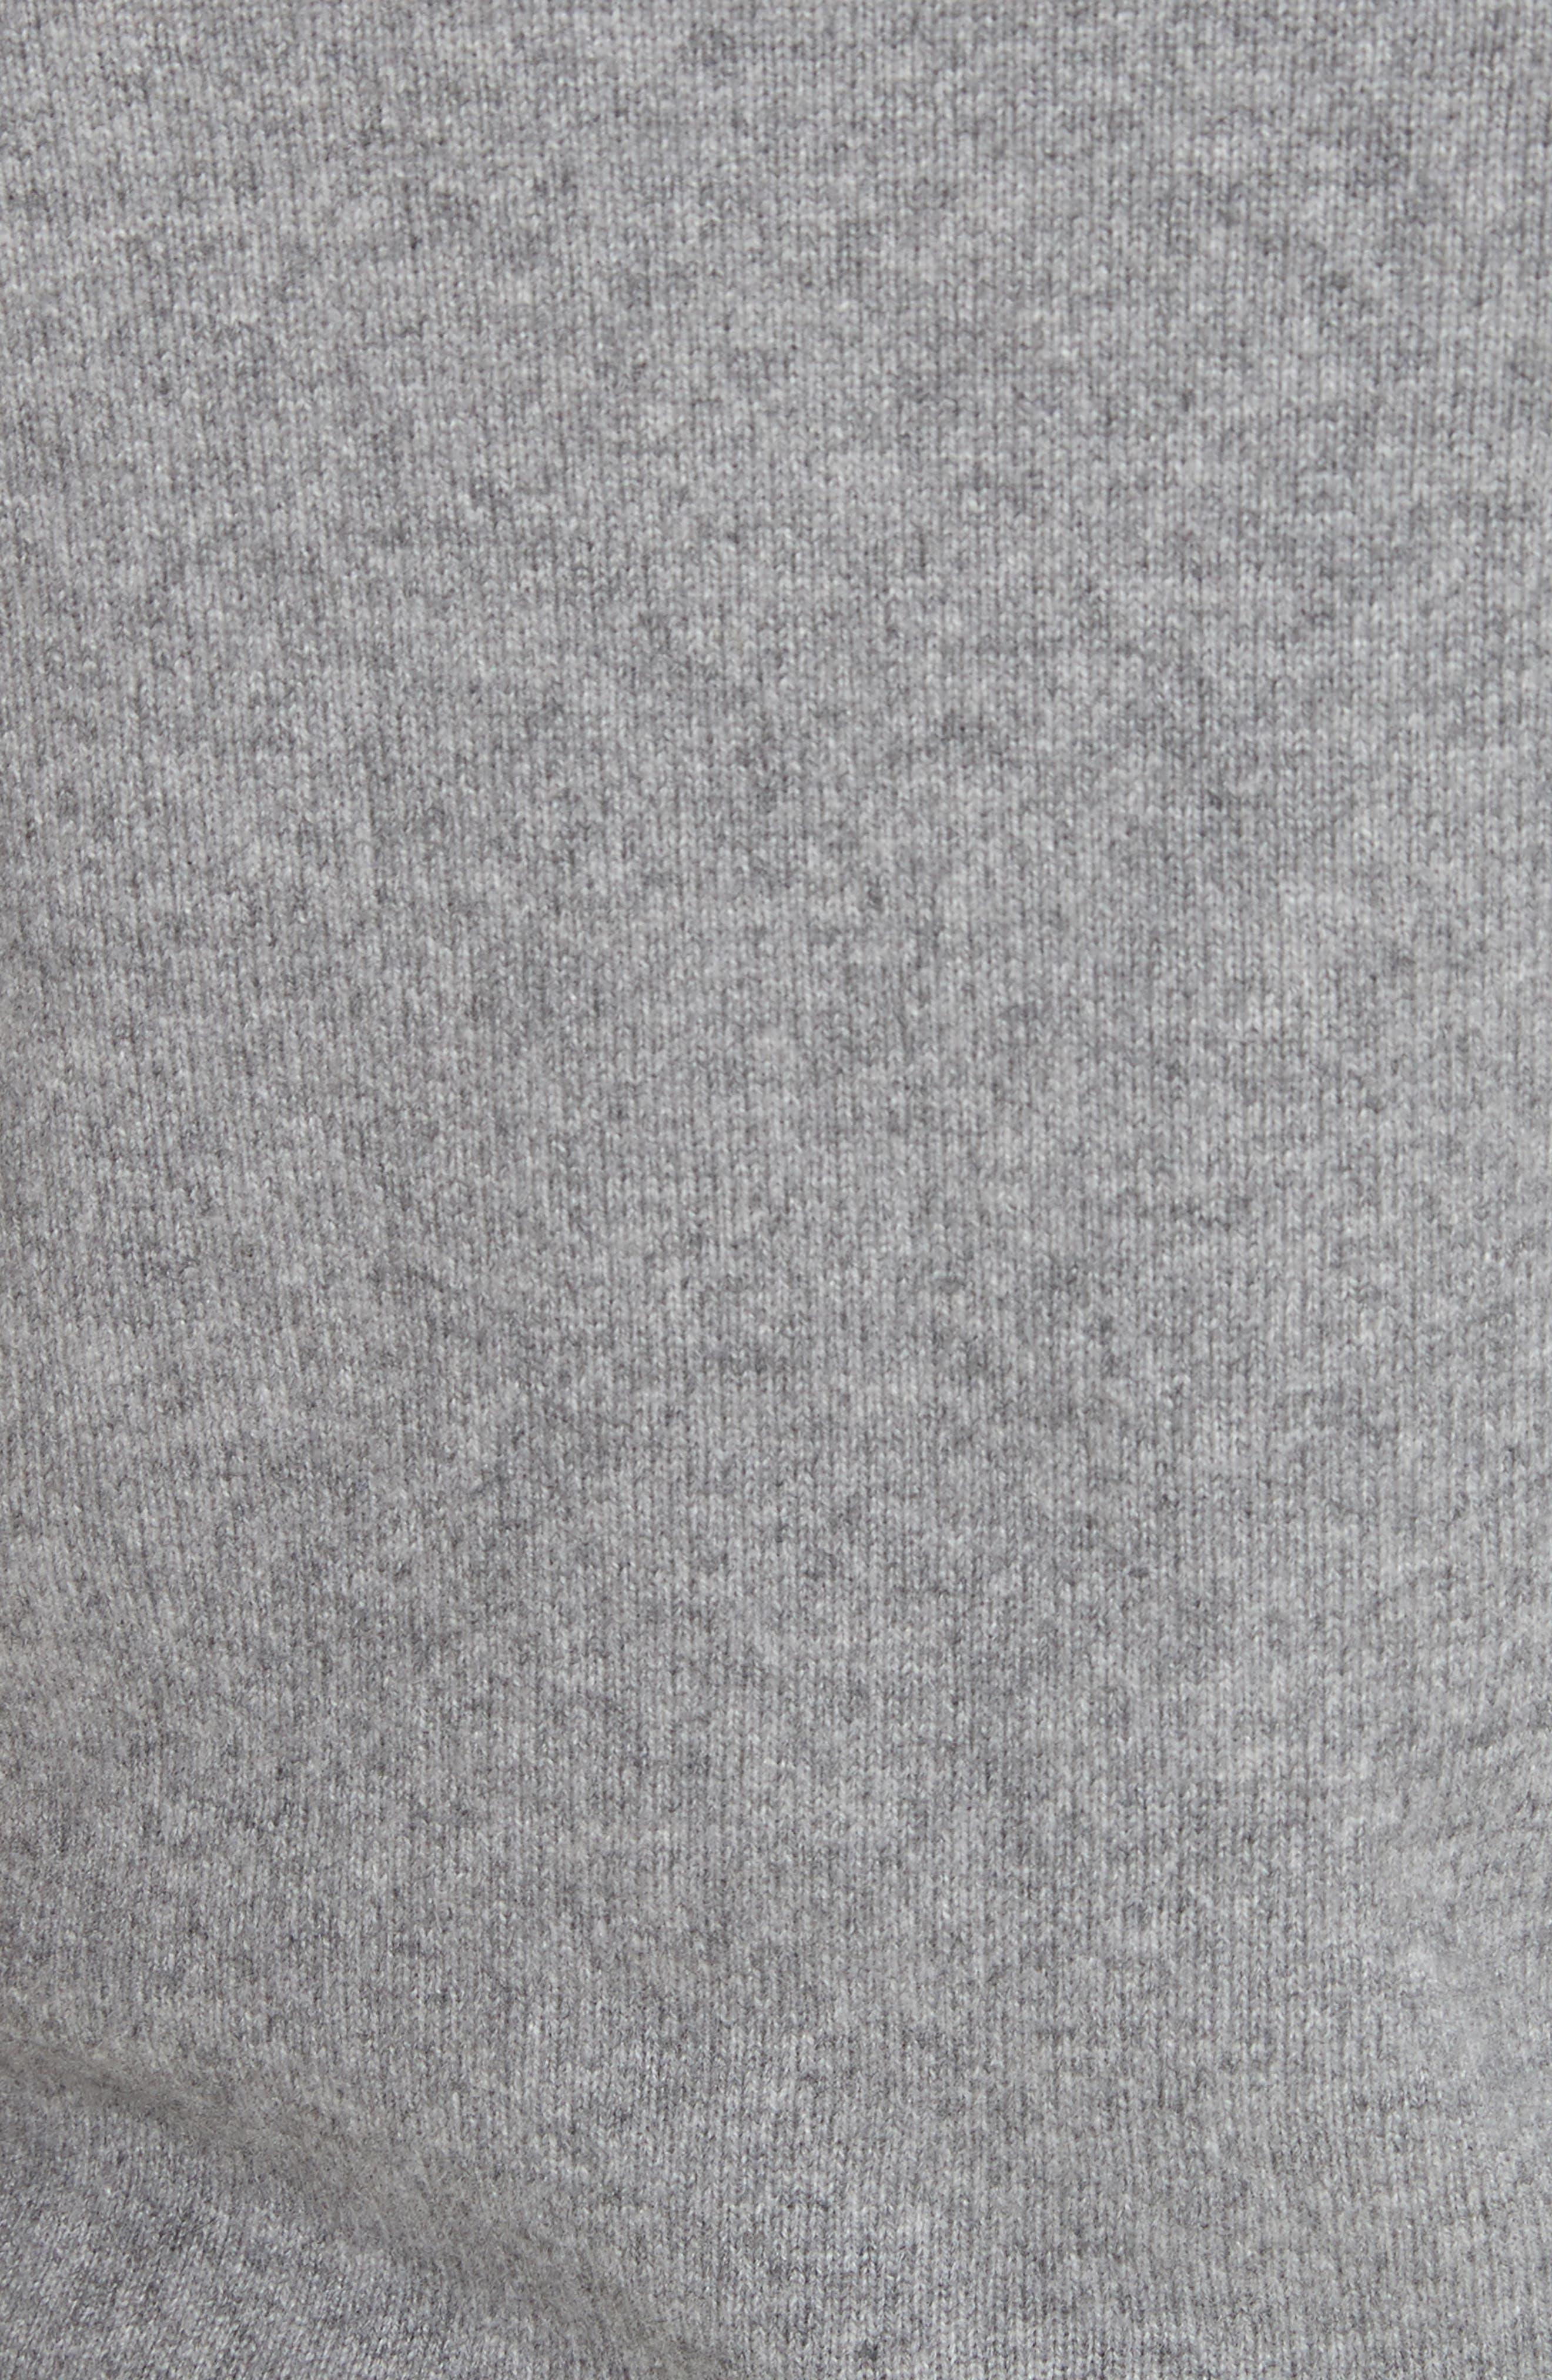 Inverted Tie Waist Wool & Cashmere Blend Sweater,                             Alternate thumbnail 5, color,                             Heather Grey